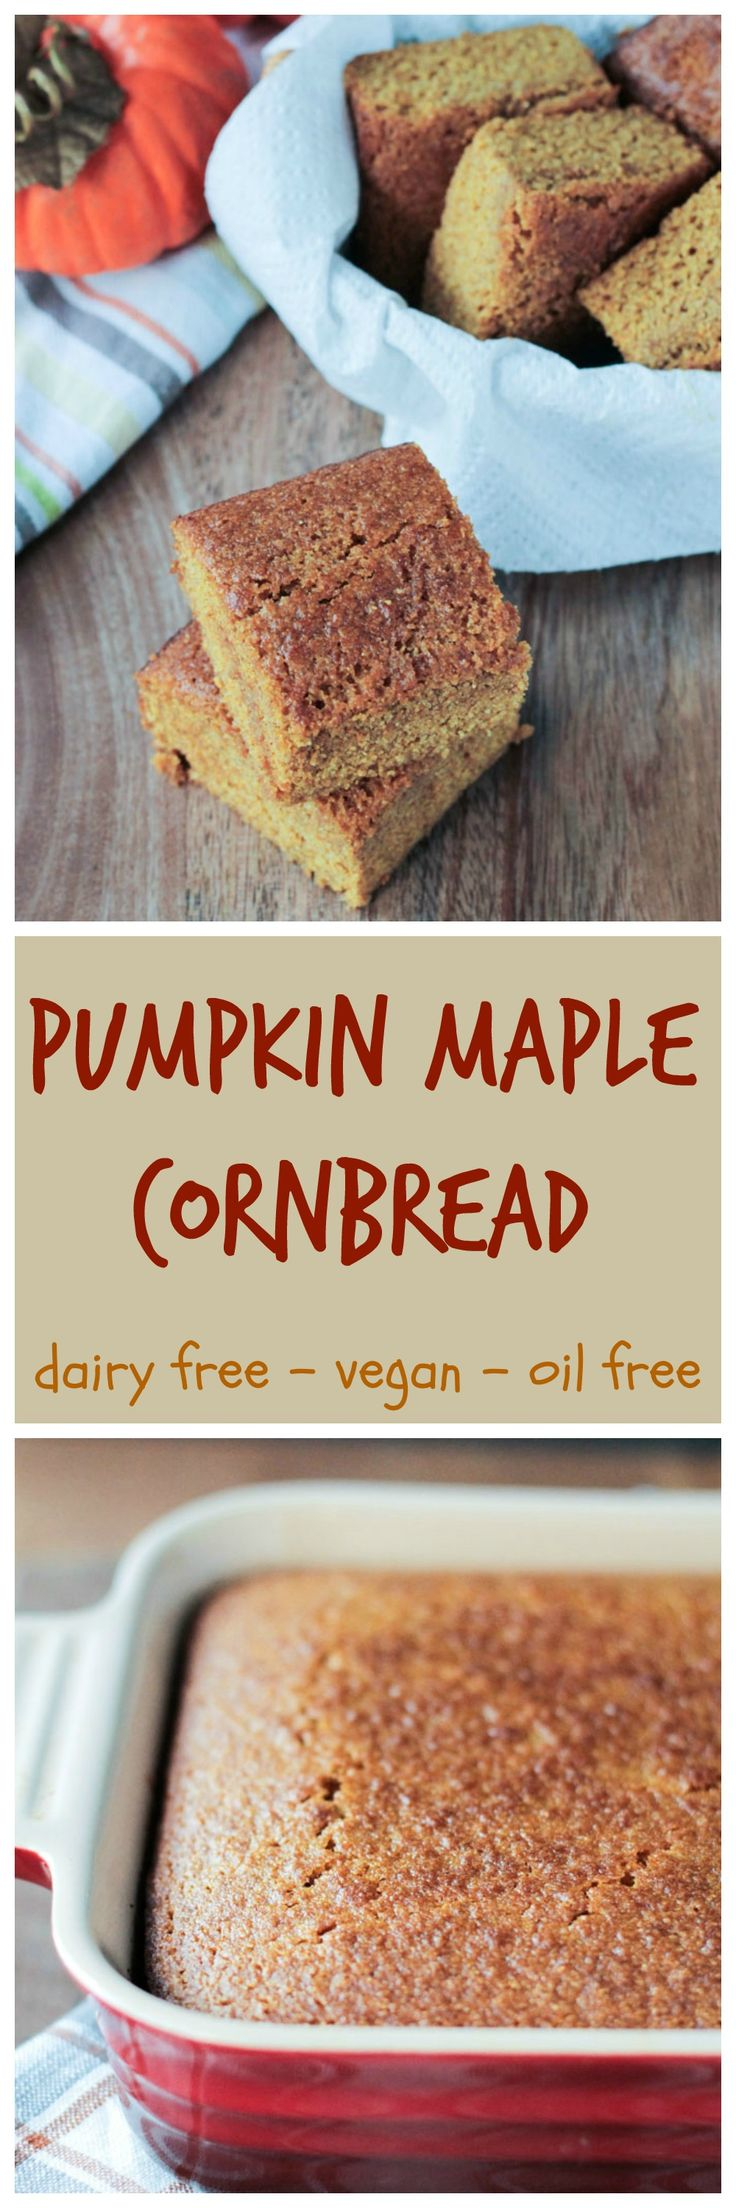 Pumpkin Maple Cornbread - a little sweet, a little savory, crusty on the top, soft and cake-like in the middle - the perfect #fall #sidedish or #snack. #vegan #dairyfree #oilfree #cornbread #pumpkin